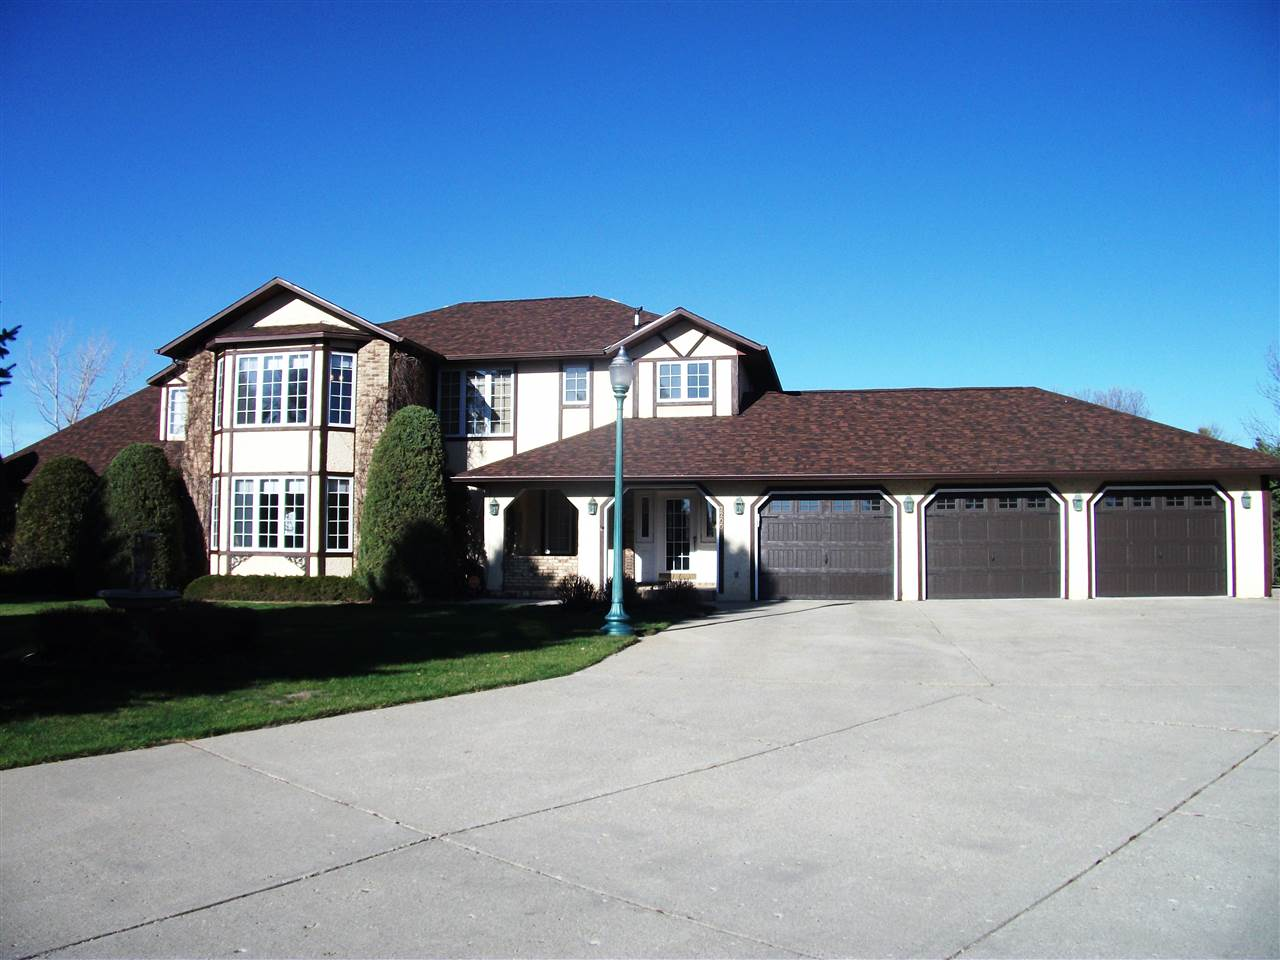 2200 SW 24th Ave, Minot, ND 58701